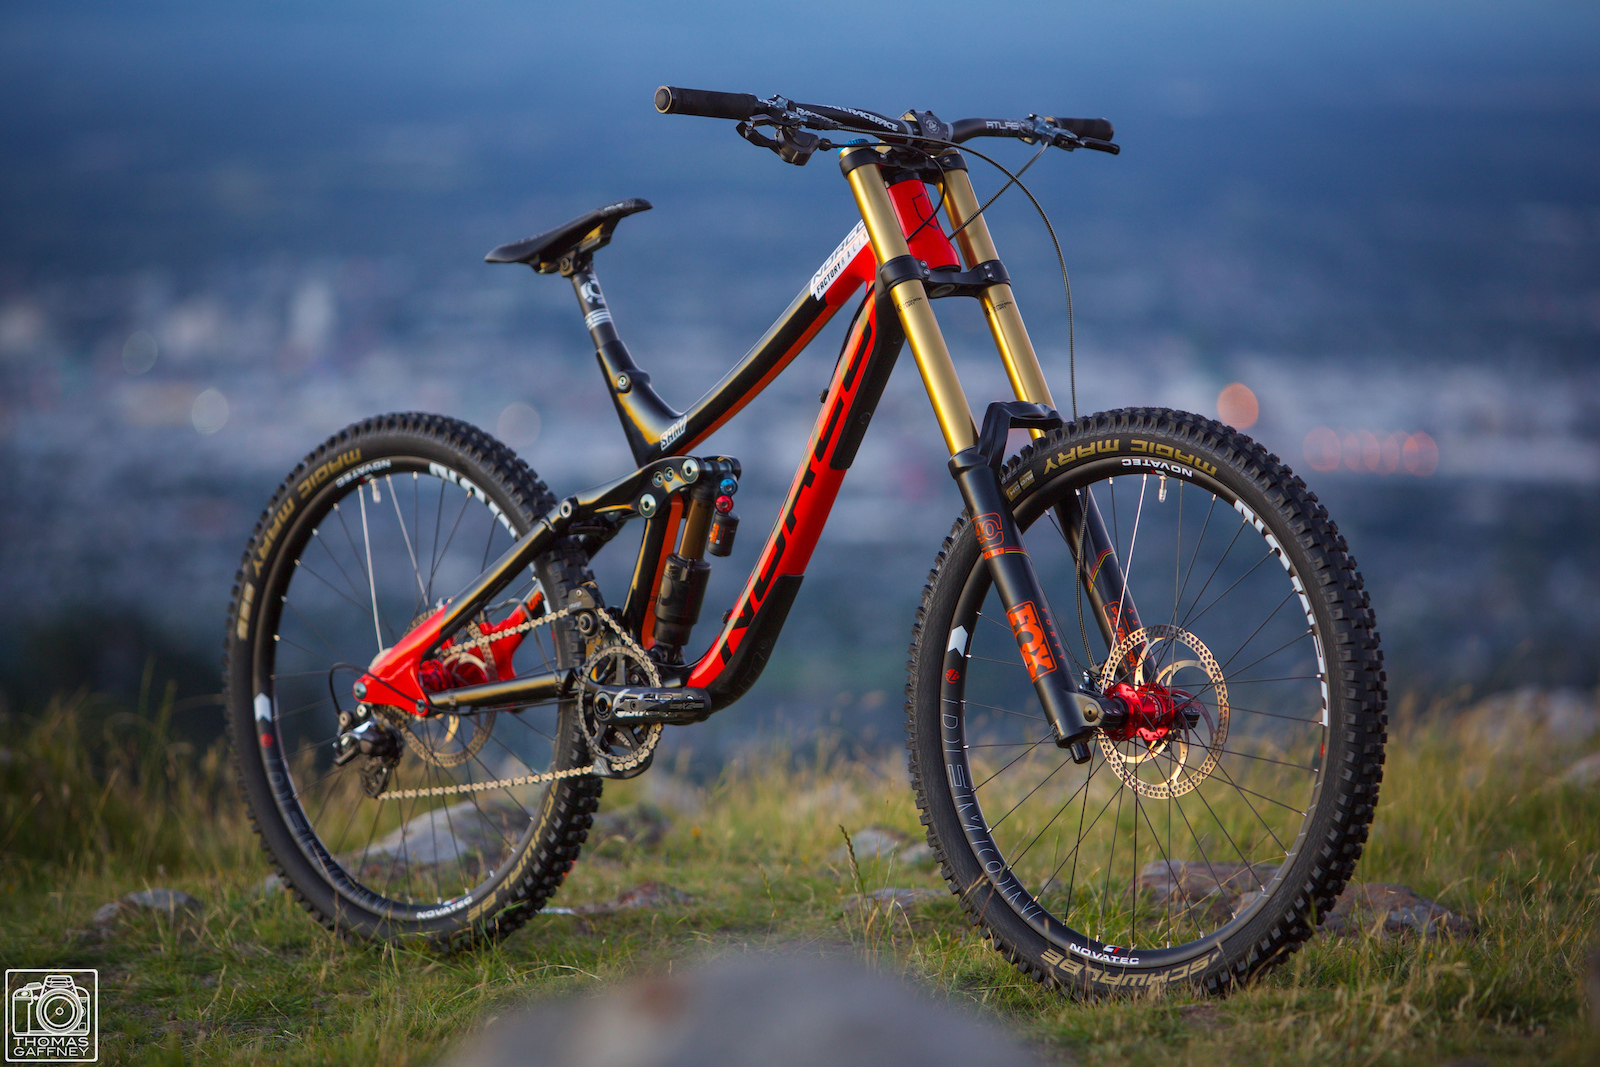 Looking forward to seeing the Norco Factory Team race these beauties at the New Zealand Nationals in Dunedin!